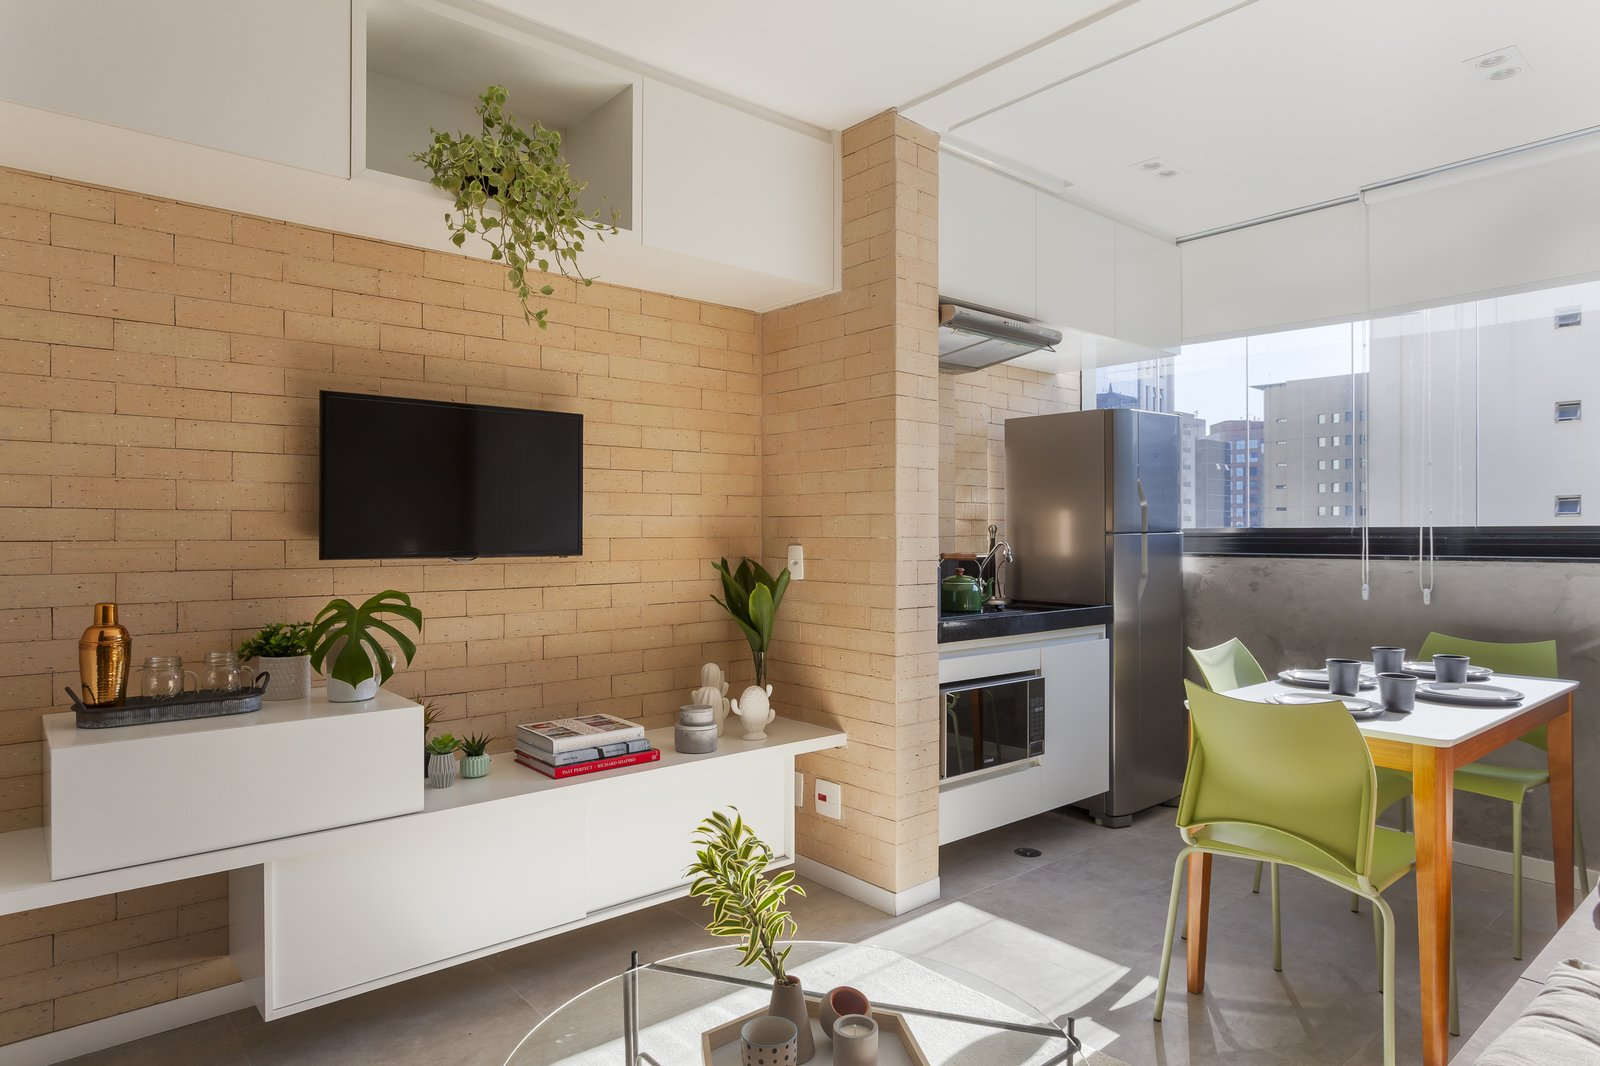 Living Room, Coffee Tables, Recessed Lighting, and Chair  Photo 5 of 9 in A 290-Square-Foot Apartment in São Paulo Takes Advantage of Every Inch